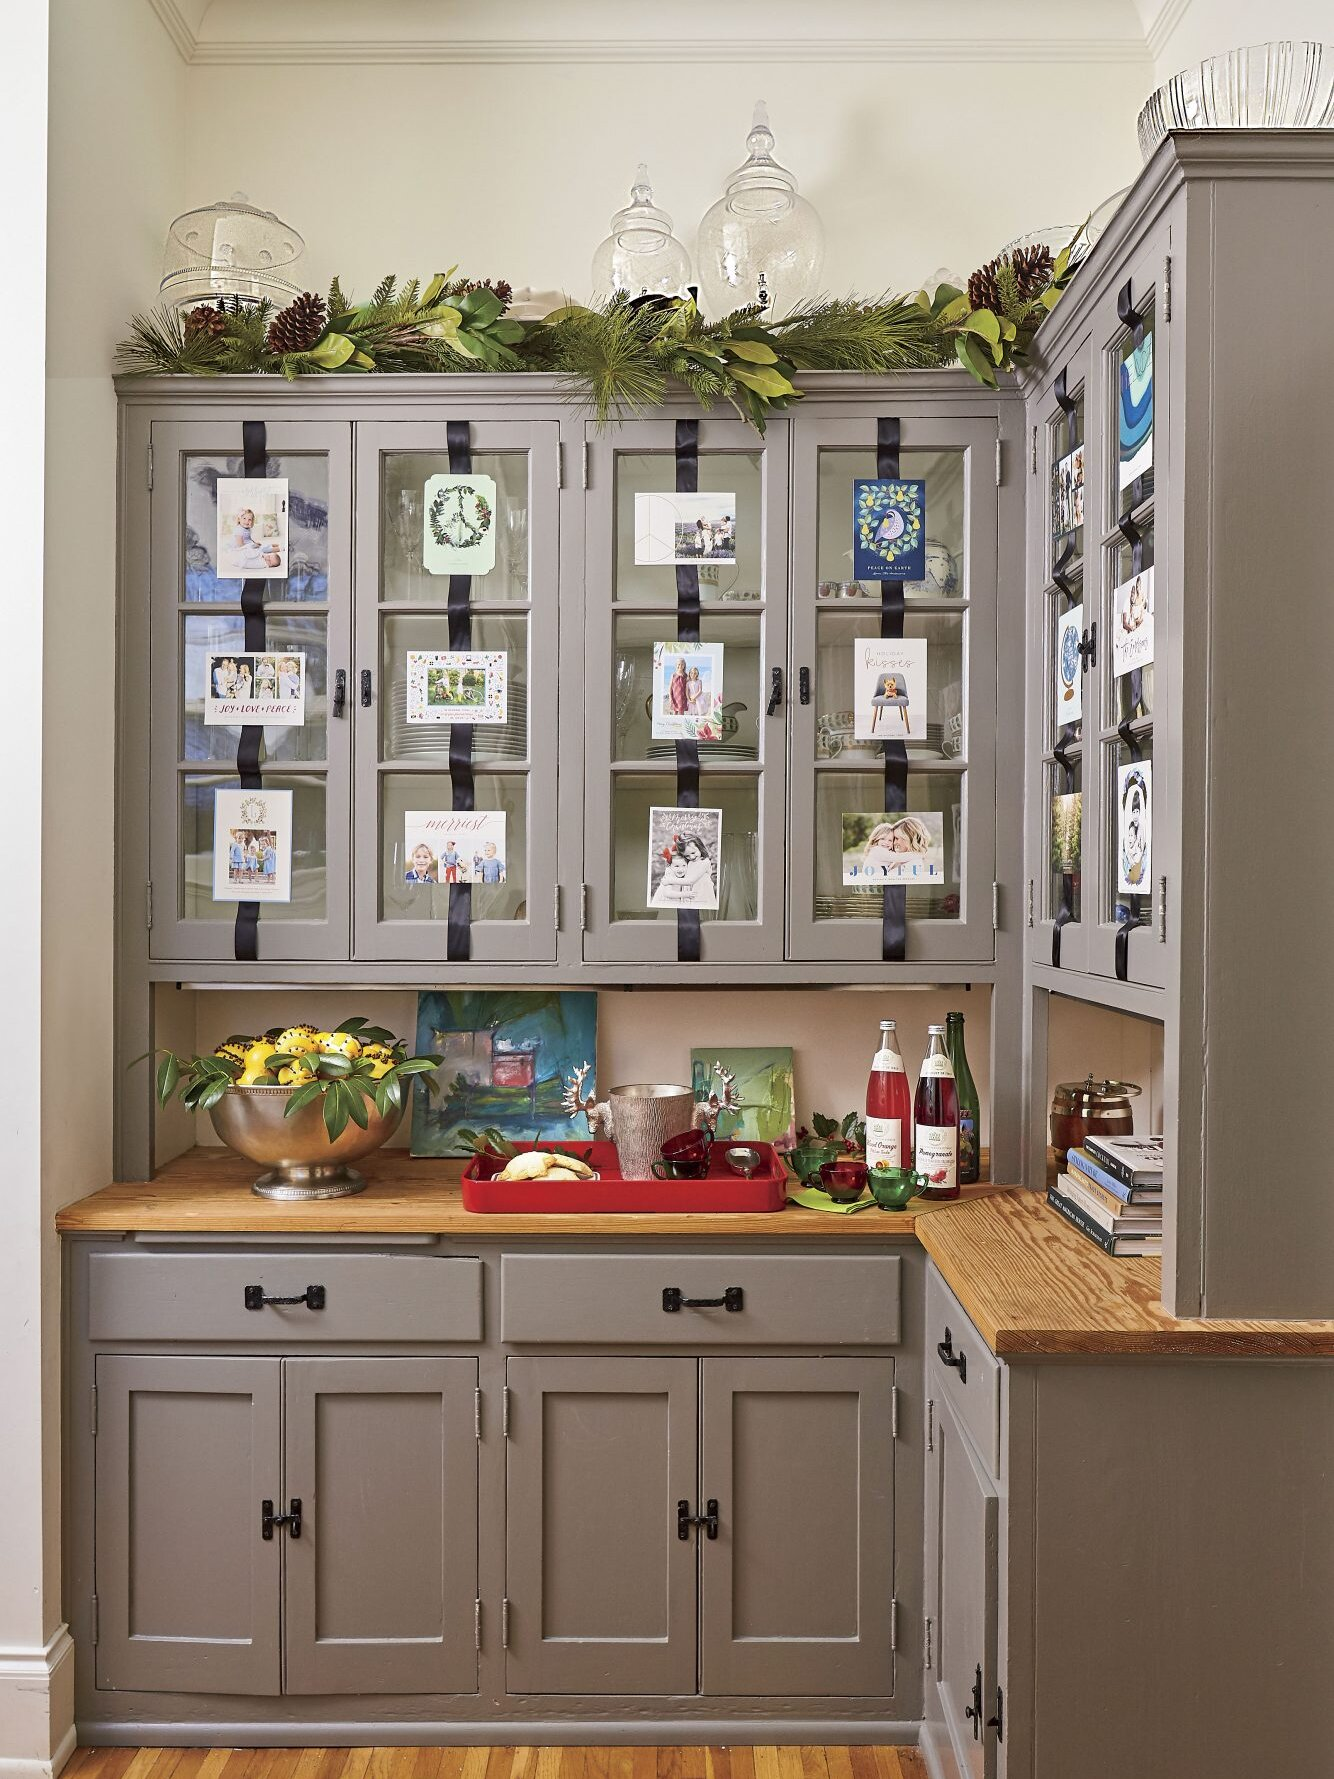 50 Ways To Decorate With Fresh Christmas Greenery Southern Living